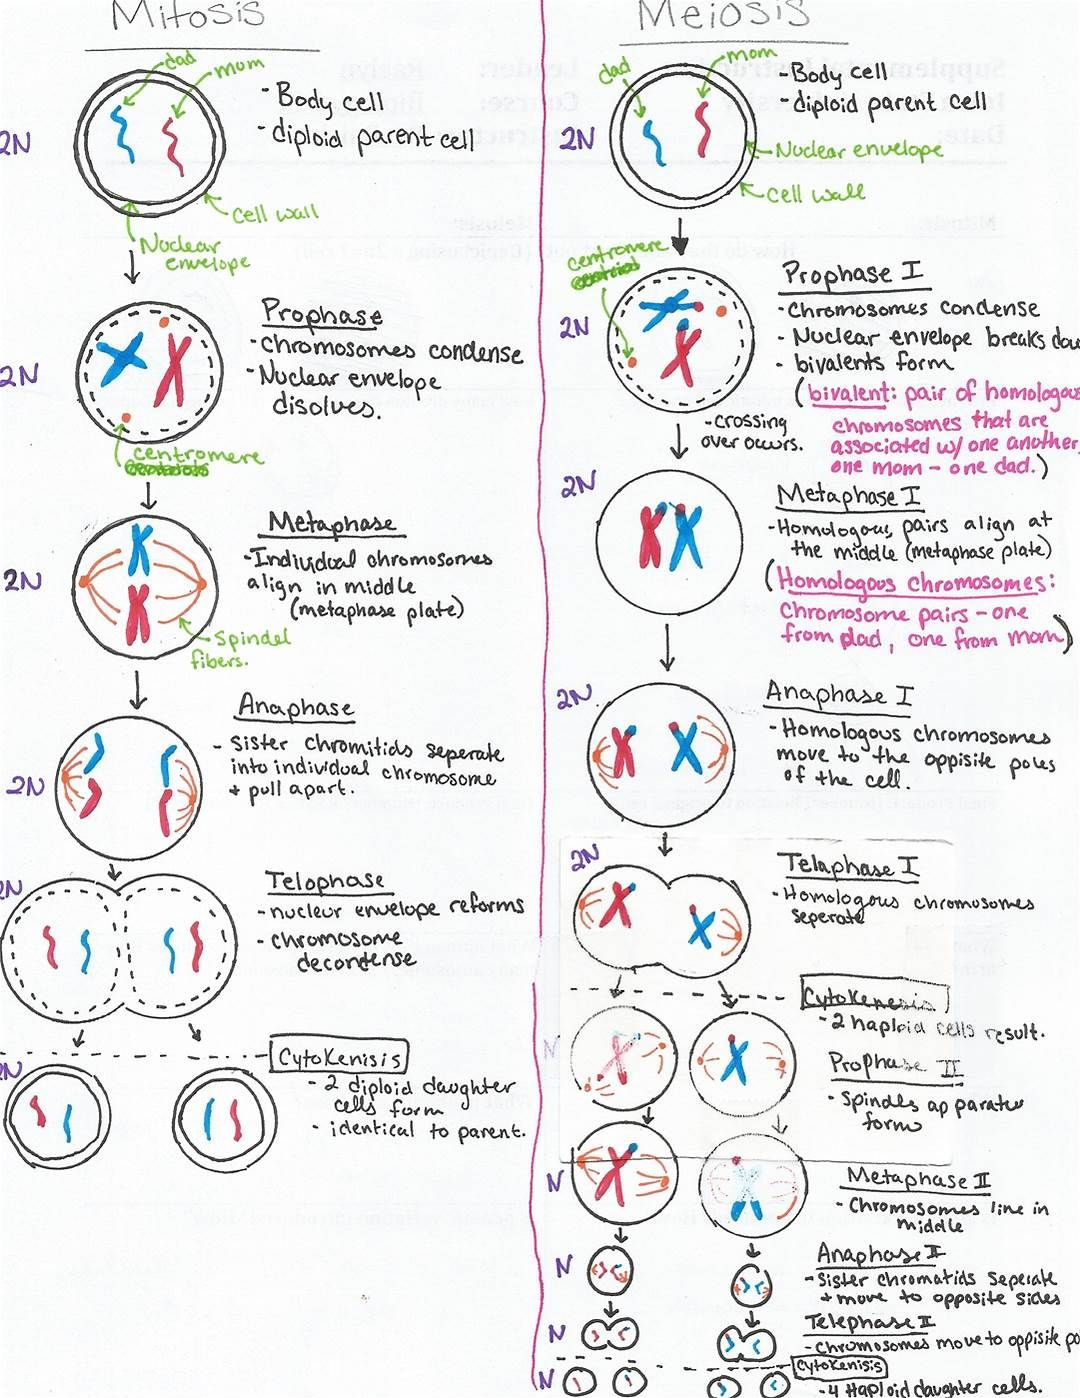 Onion Cell Mitosis Worksheet Answers Meiosis Stages Worksheet I§in Resim sonucu